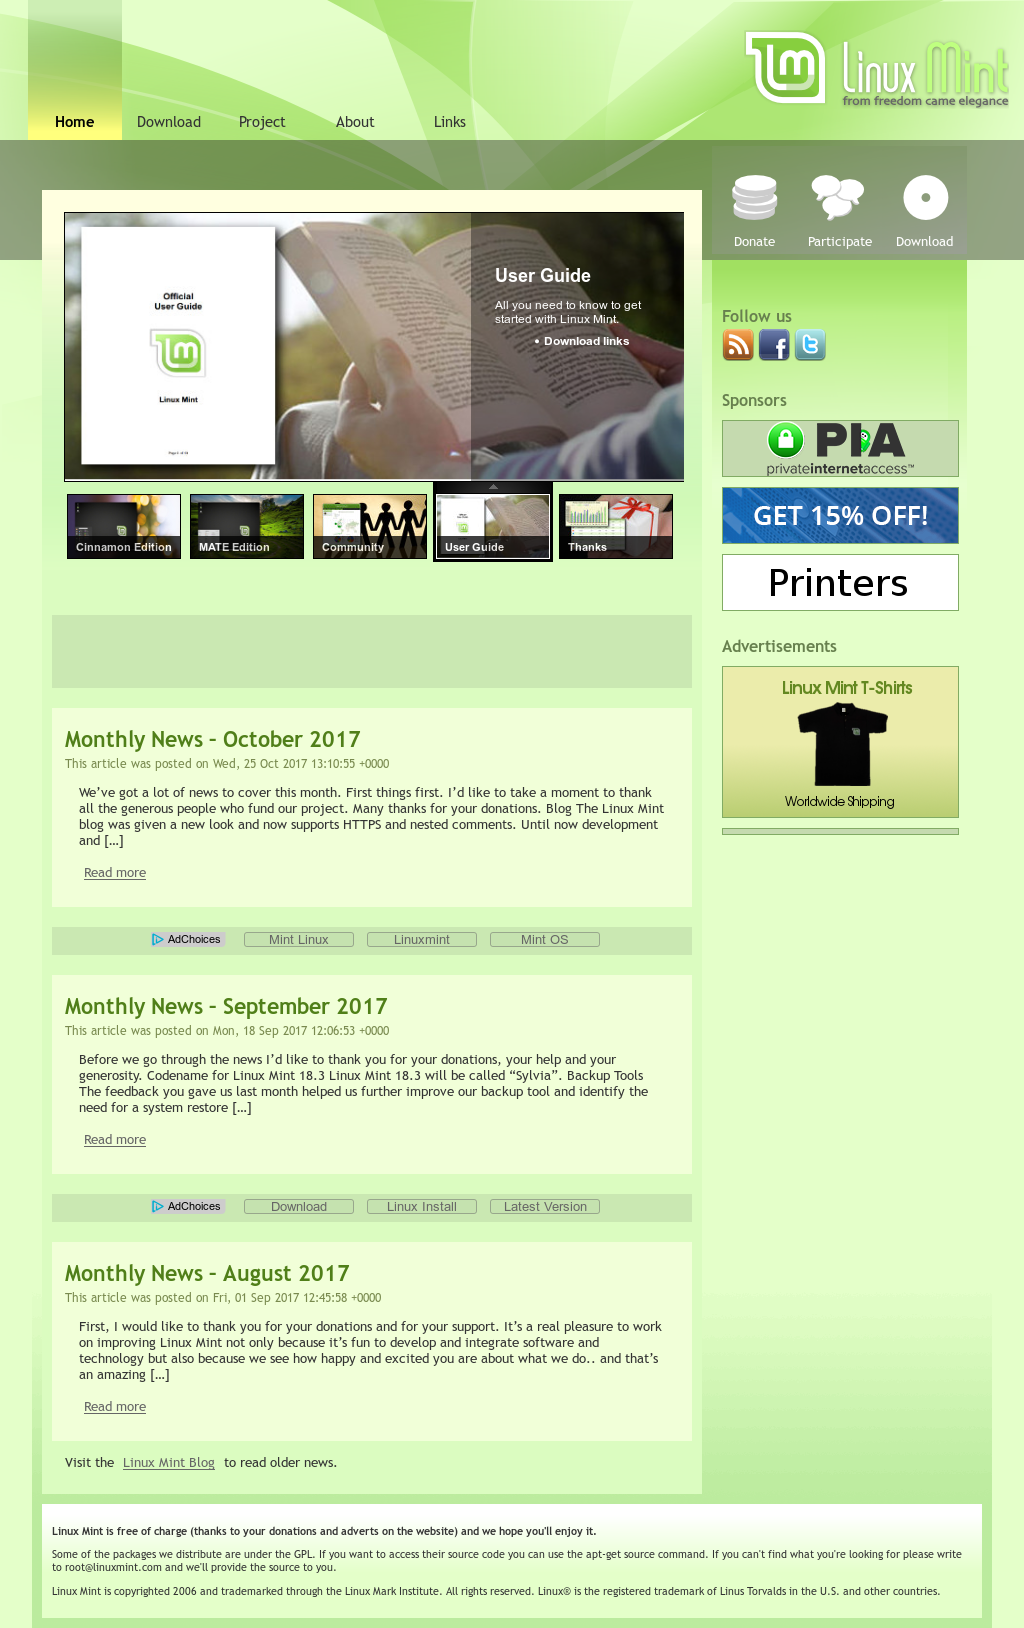 Linuxmint Competitors, Revenue and Employees - Owler Company